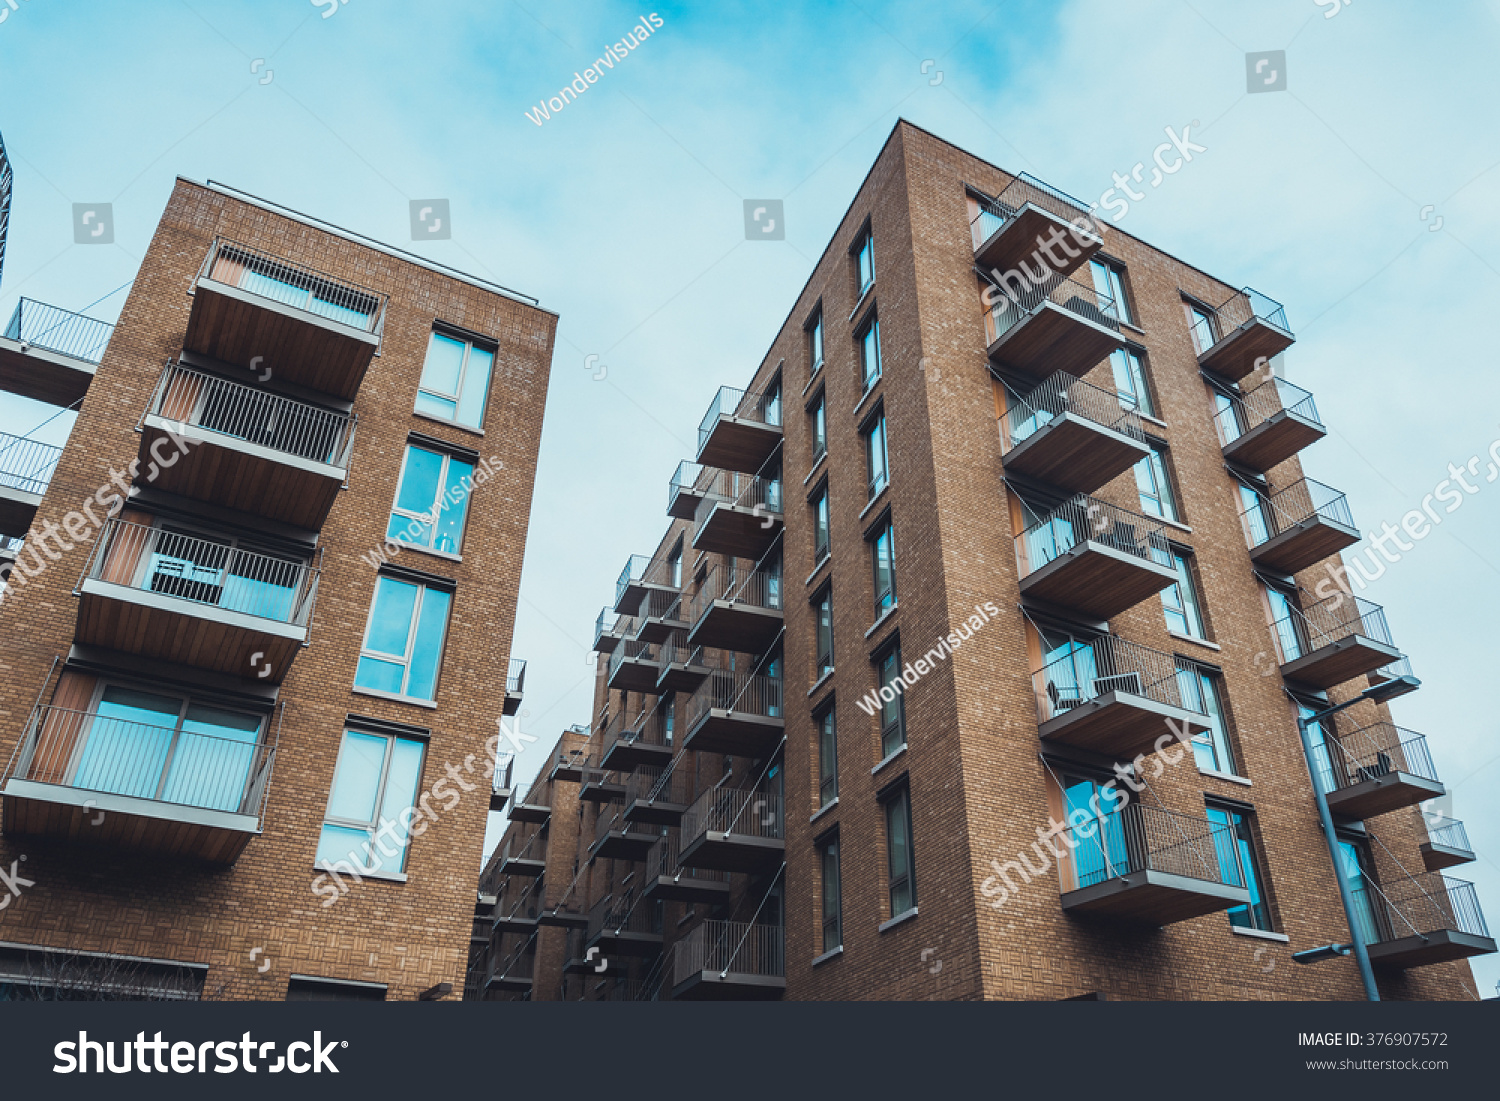 Extreme Wide Angle View Of Tall Brick Residential Apartment Buildings With  Tiny Balconies And Long Windows